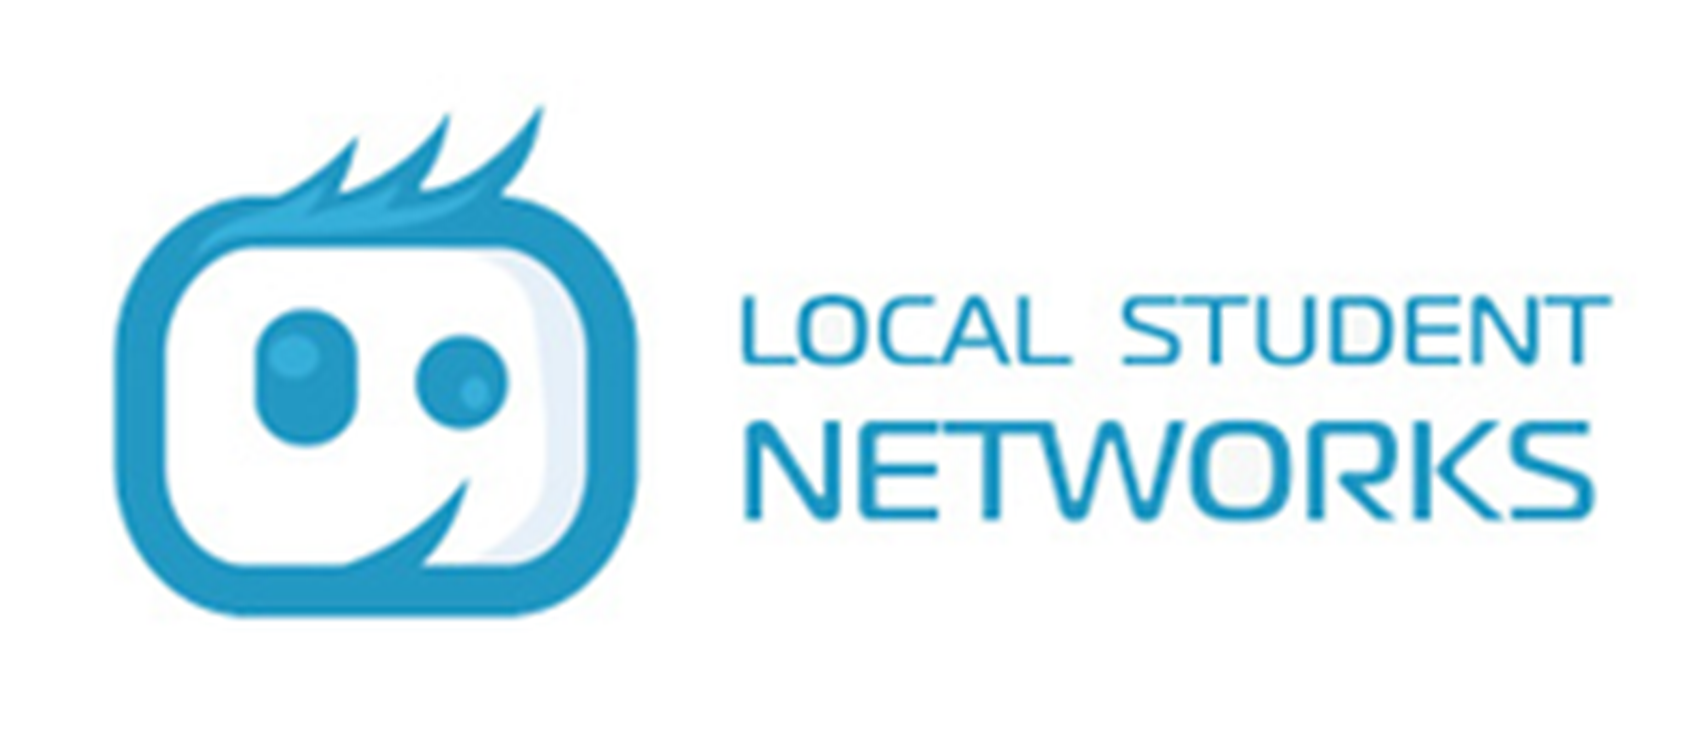 LOCAL STUDENT NETWORKS